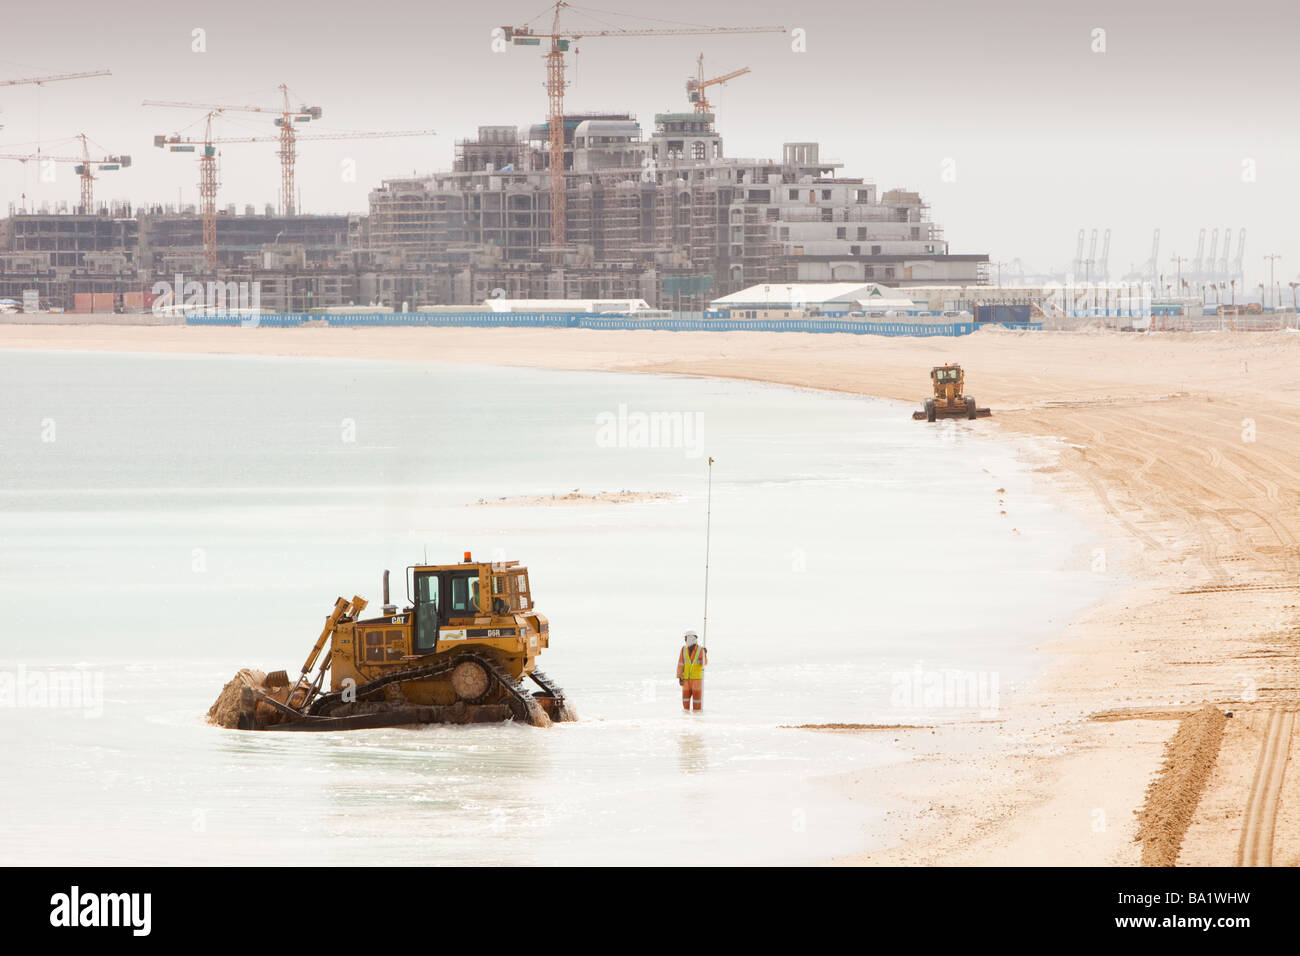 Constructing a new beach reclaimed from the sea on the Palm in Dubai,UAE Stock Photo